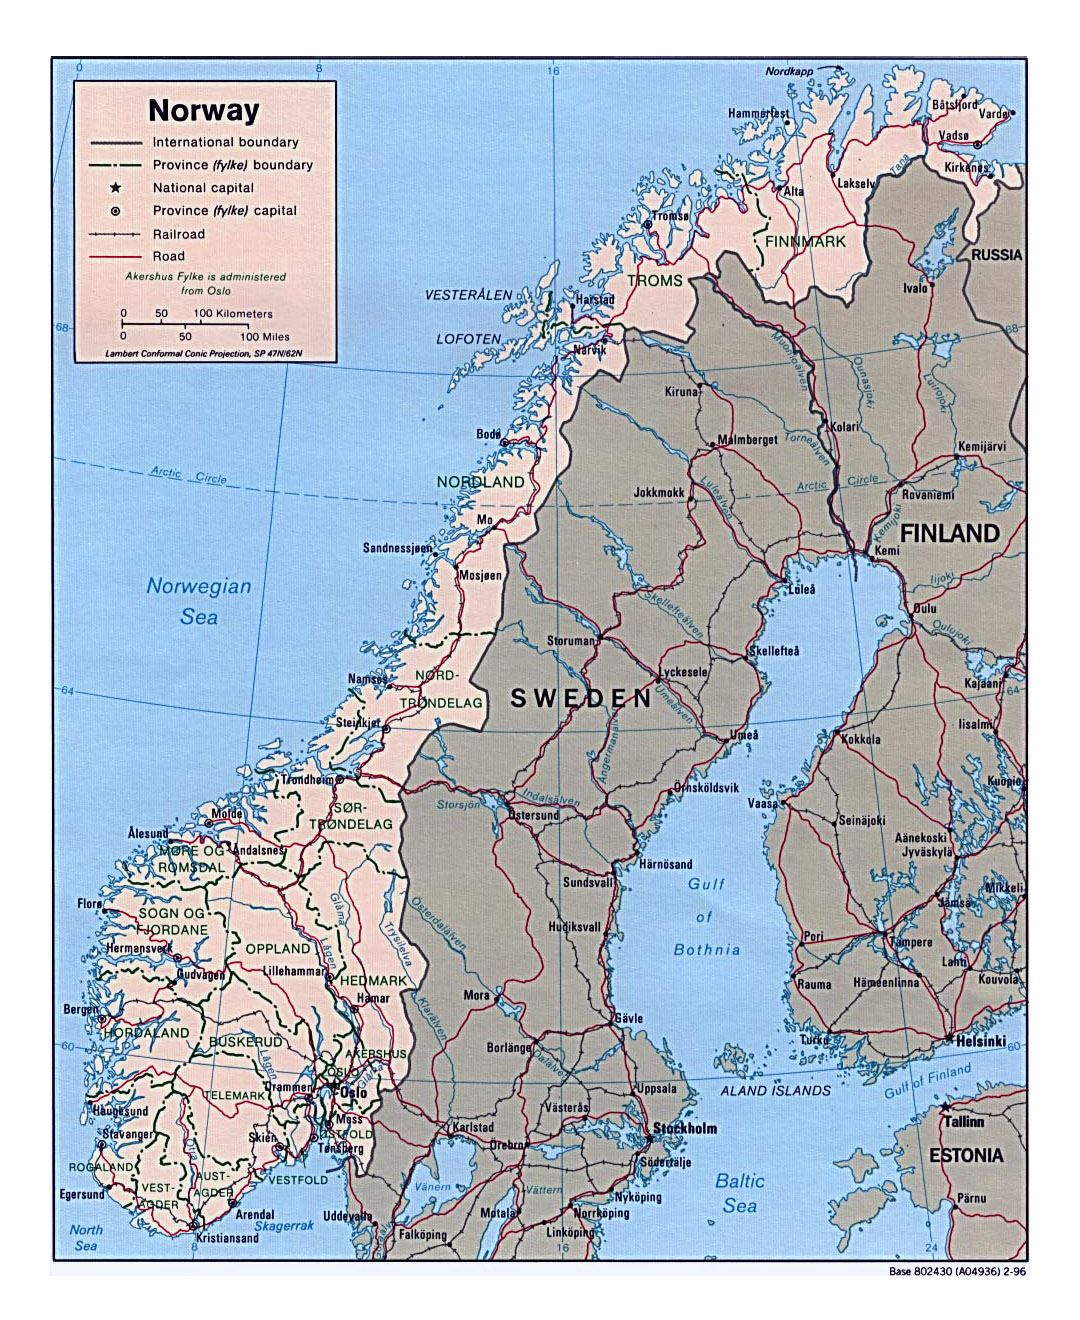 Detailed political and administrative map of Norway with roads and major cities - 1996